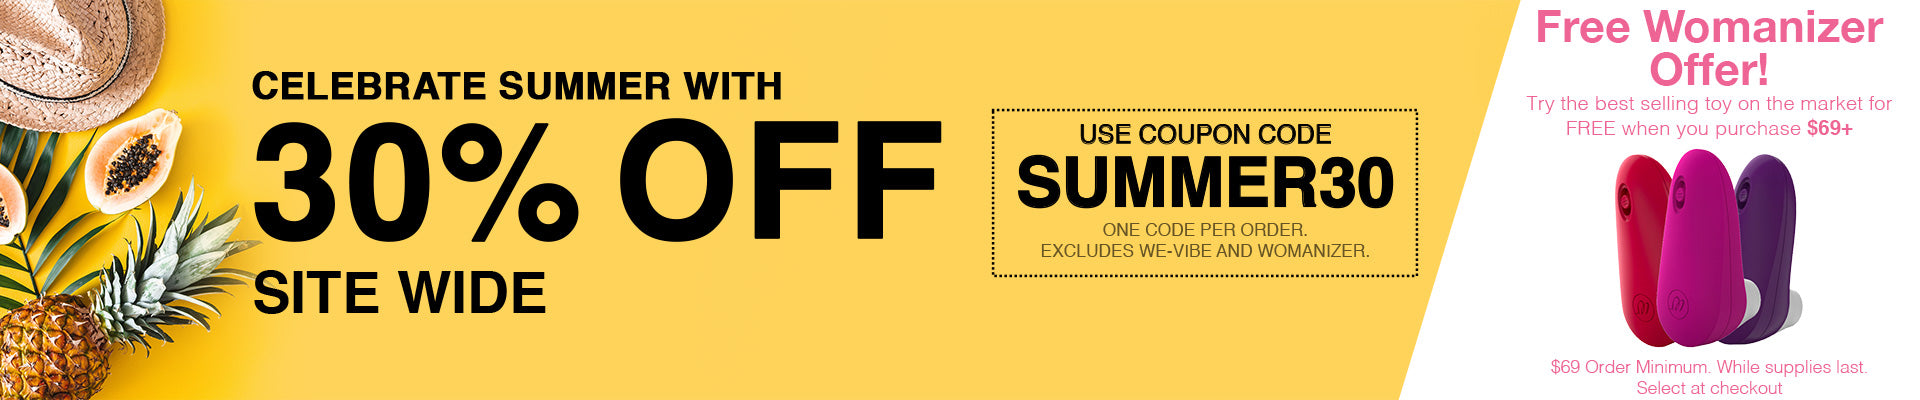 Sex Toy Store Online - 30% Off Site Wide - Use Code SUMMER30